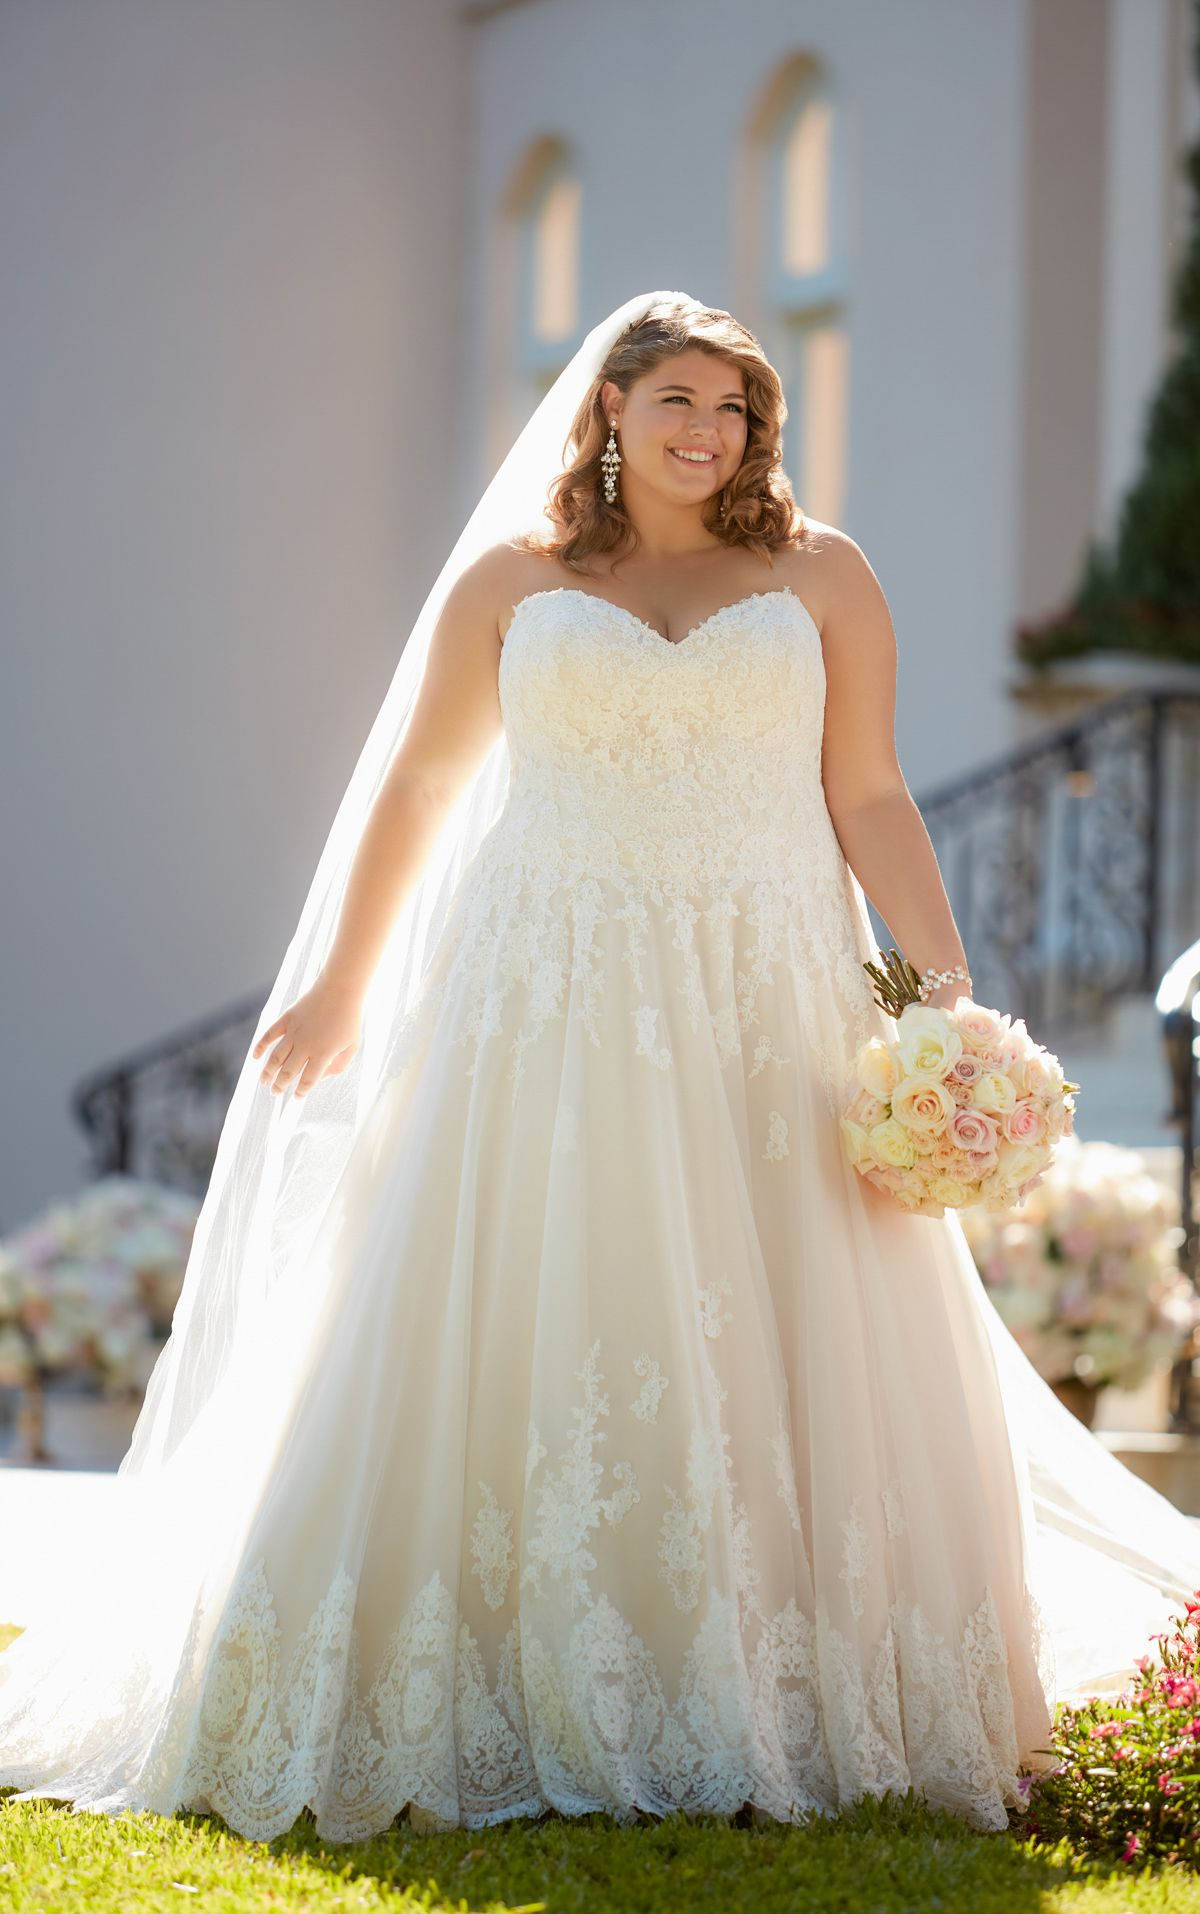 Bbw wedding dresses  Romantic Ball Gown with Scalloped Lace Edge  Wedding Stuff